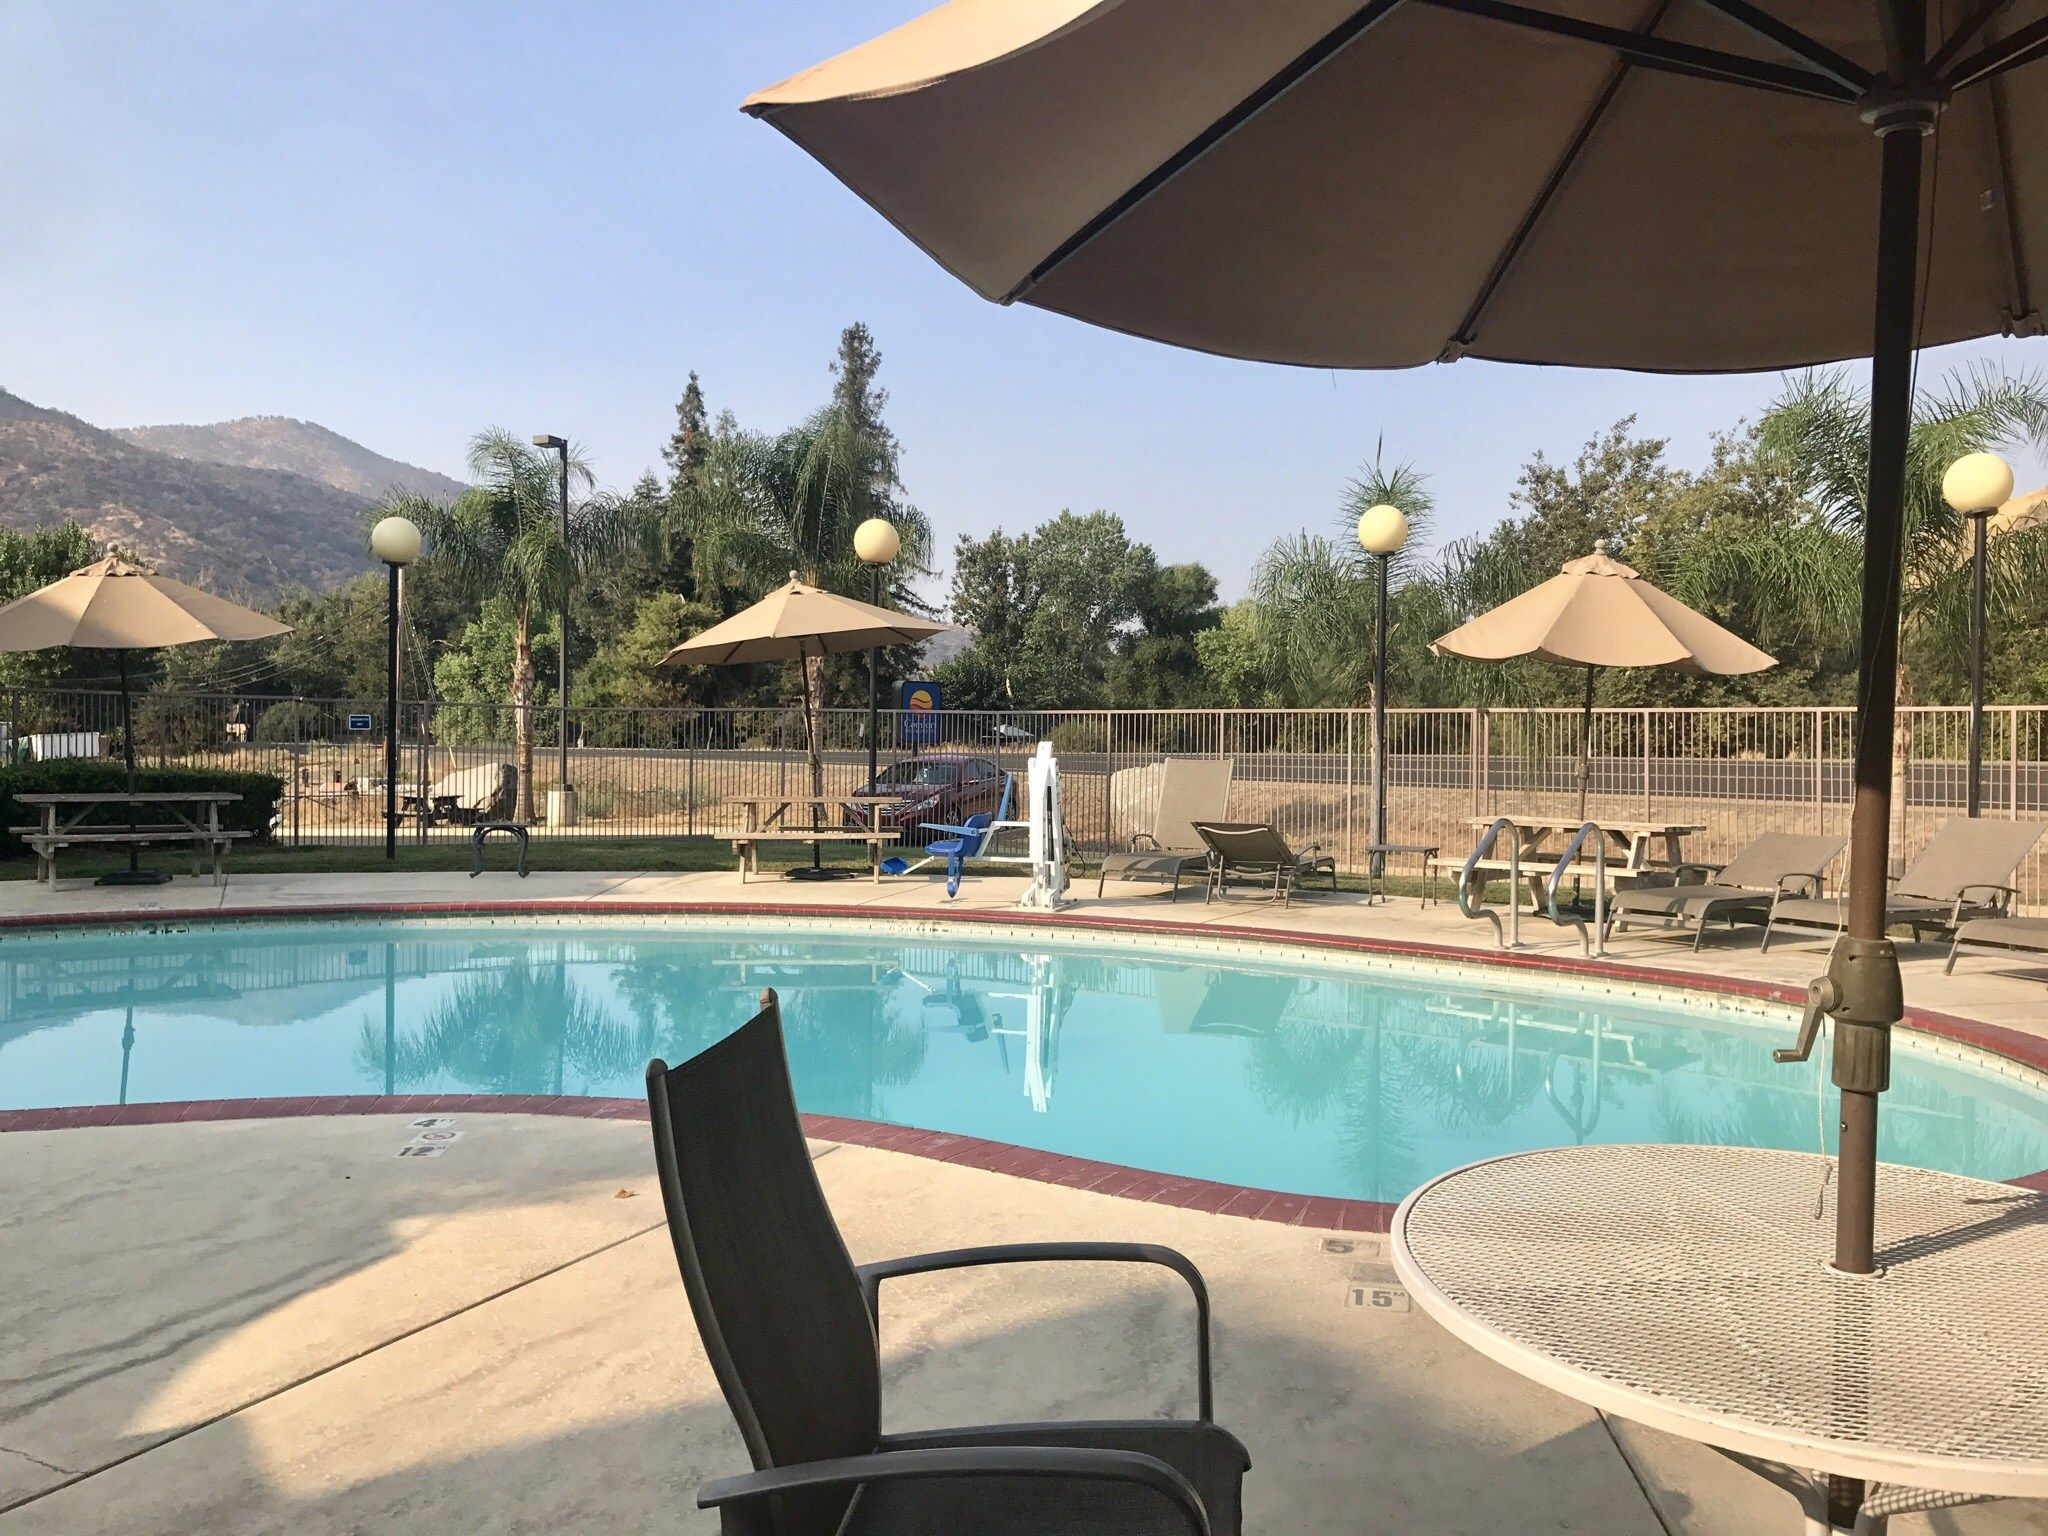 Hotel Review Comfort Inn Sequoia National Park Smart Money And